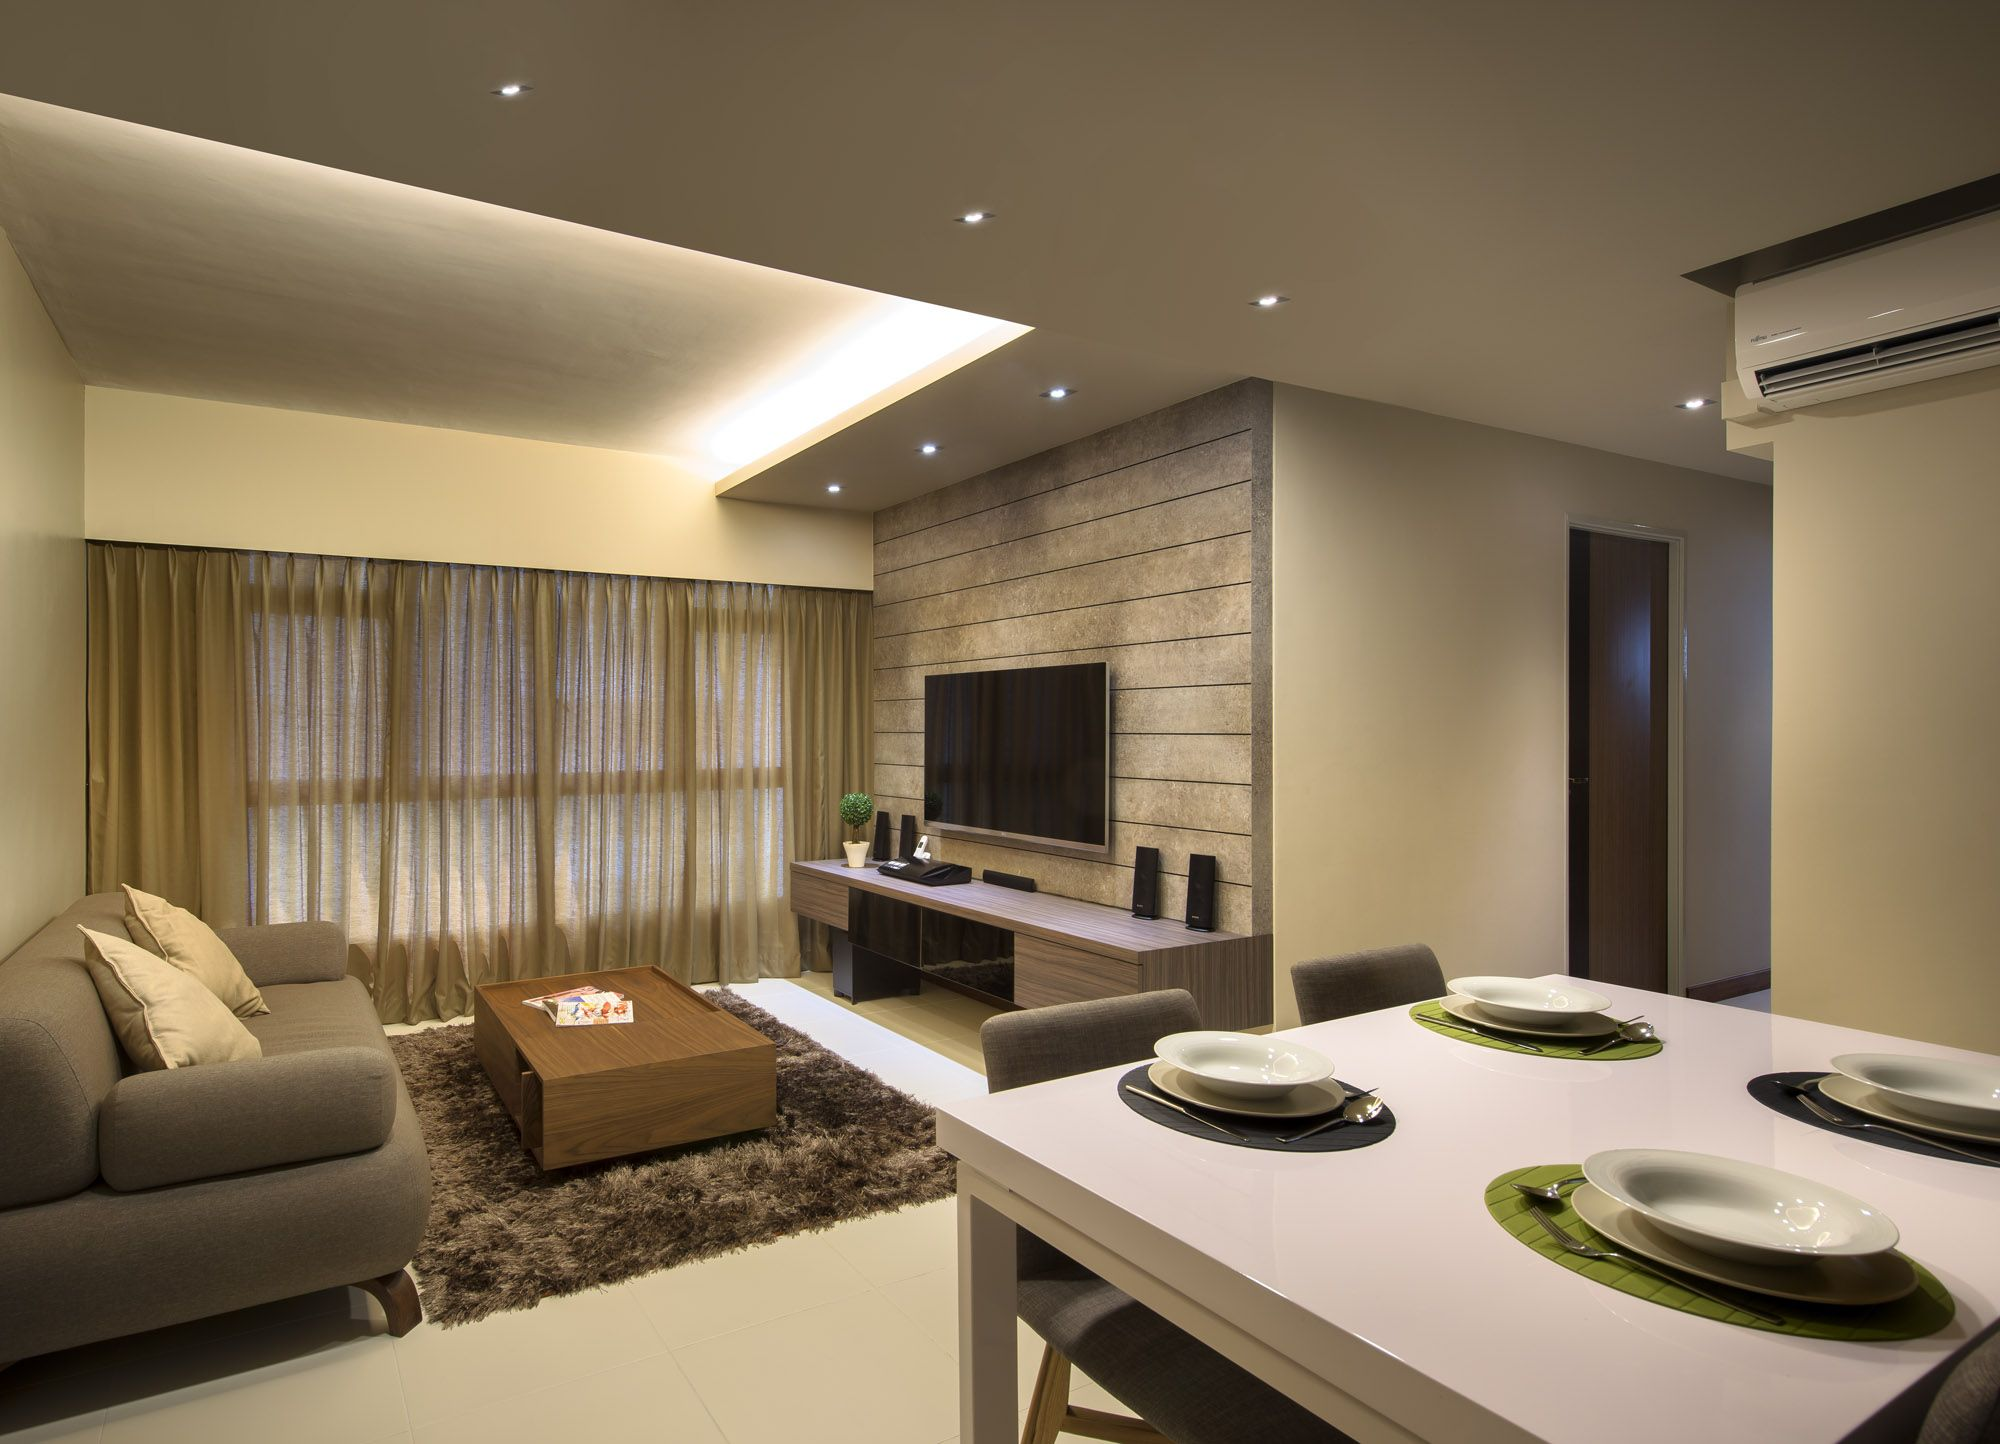 Rezt relax interior design and renovation singapore for Living room ideas hdb